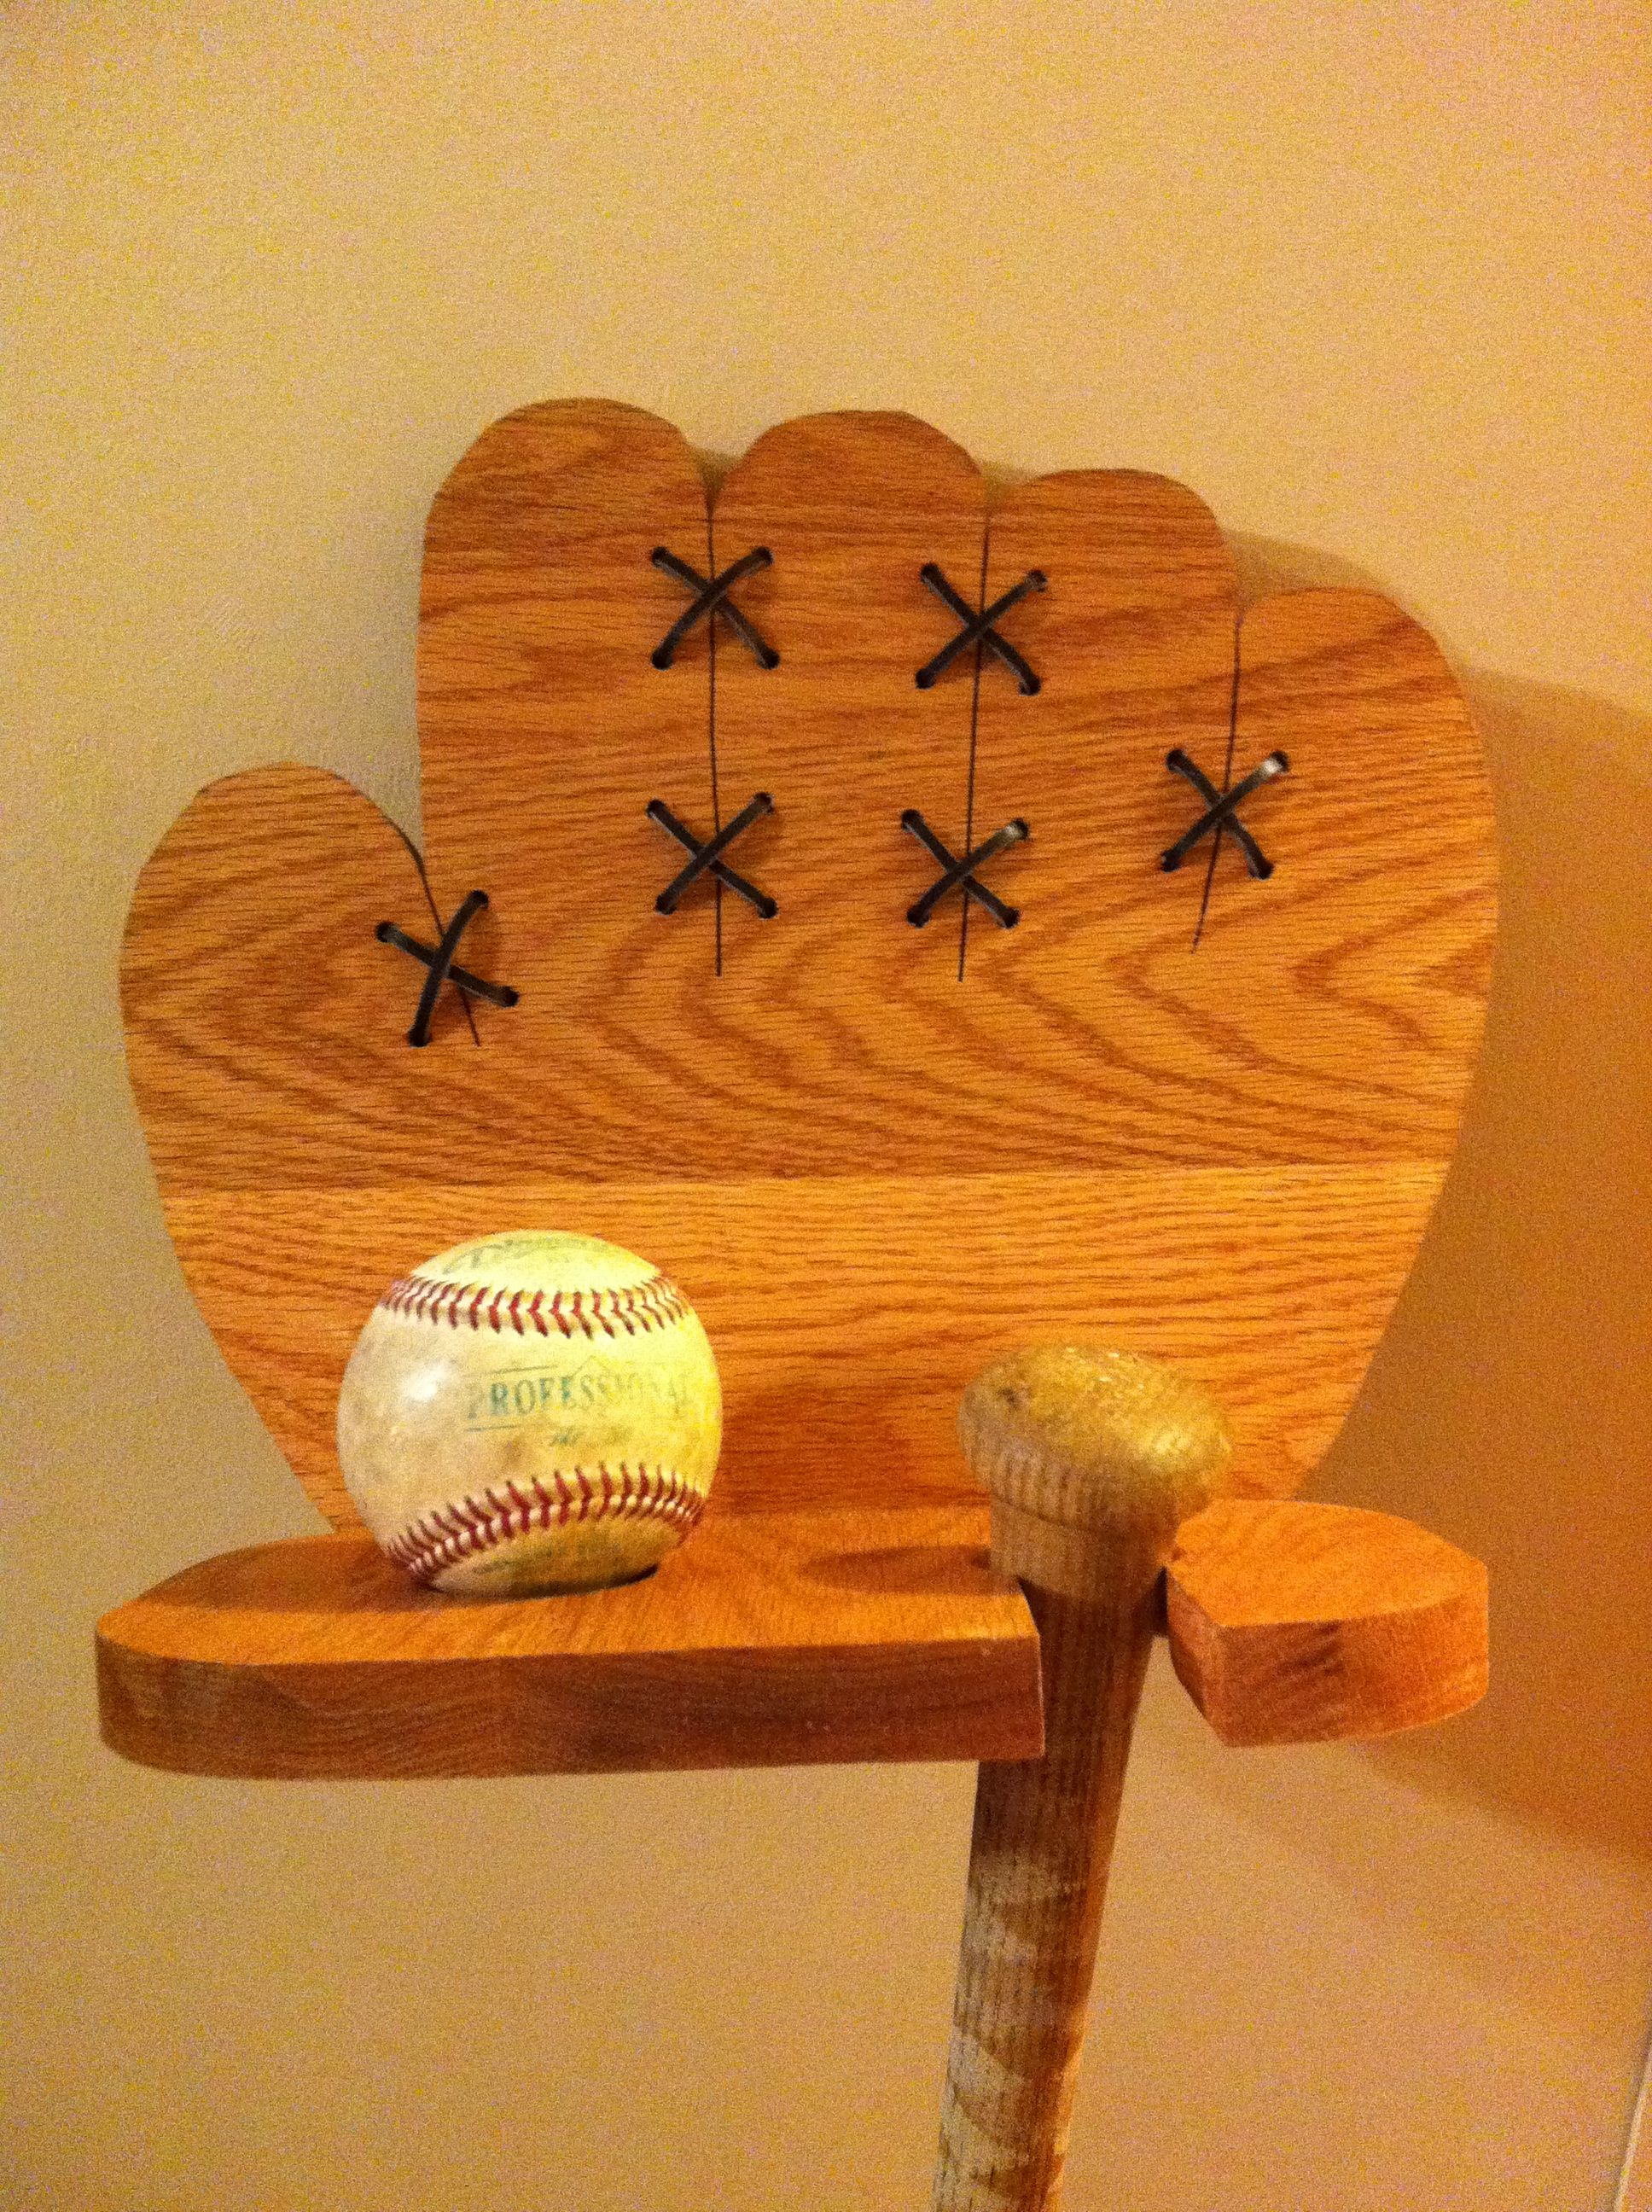 Ball And Bat Holder Sports Stuff In 2018 Pinterest Wood Wood